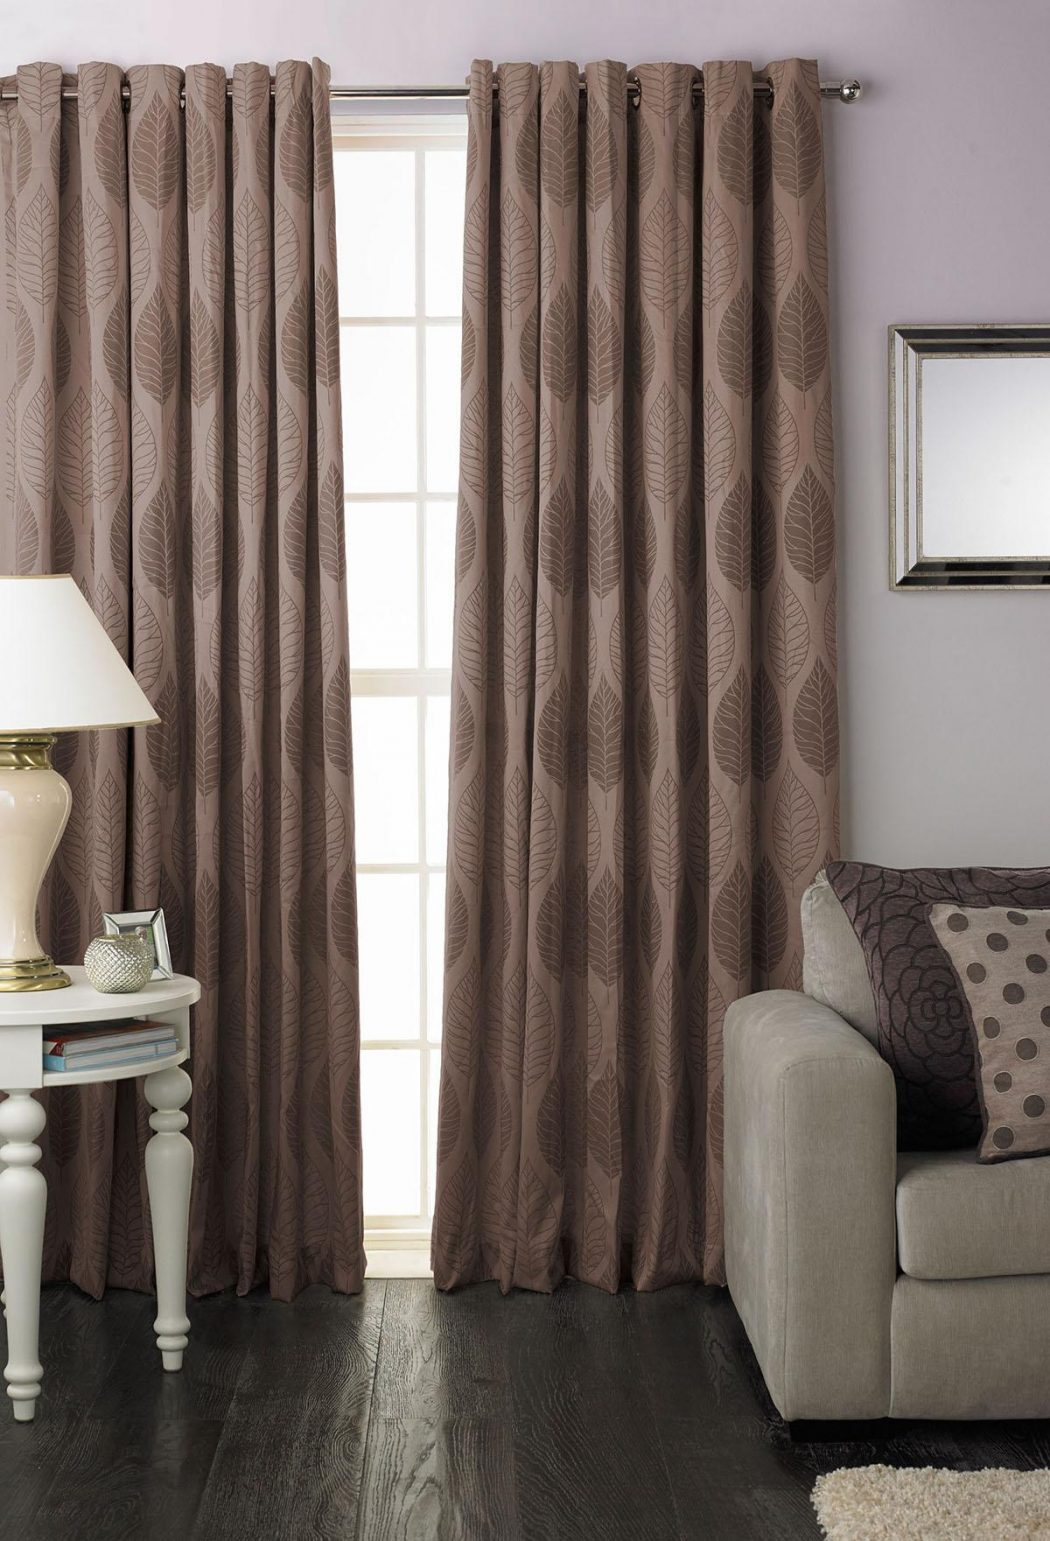 dalby-rt-curtain-mocha 20+ Hottest Curtain Designs for 2019